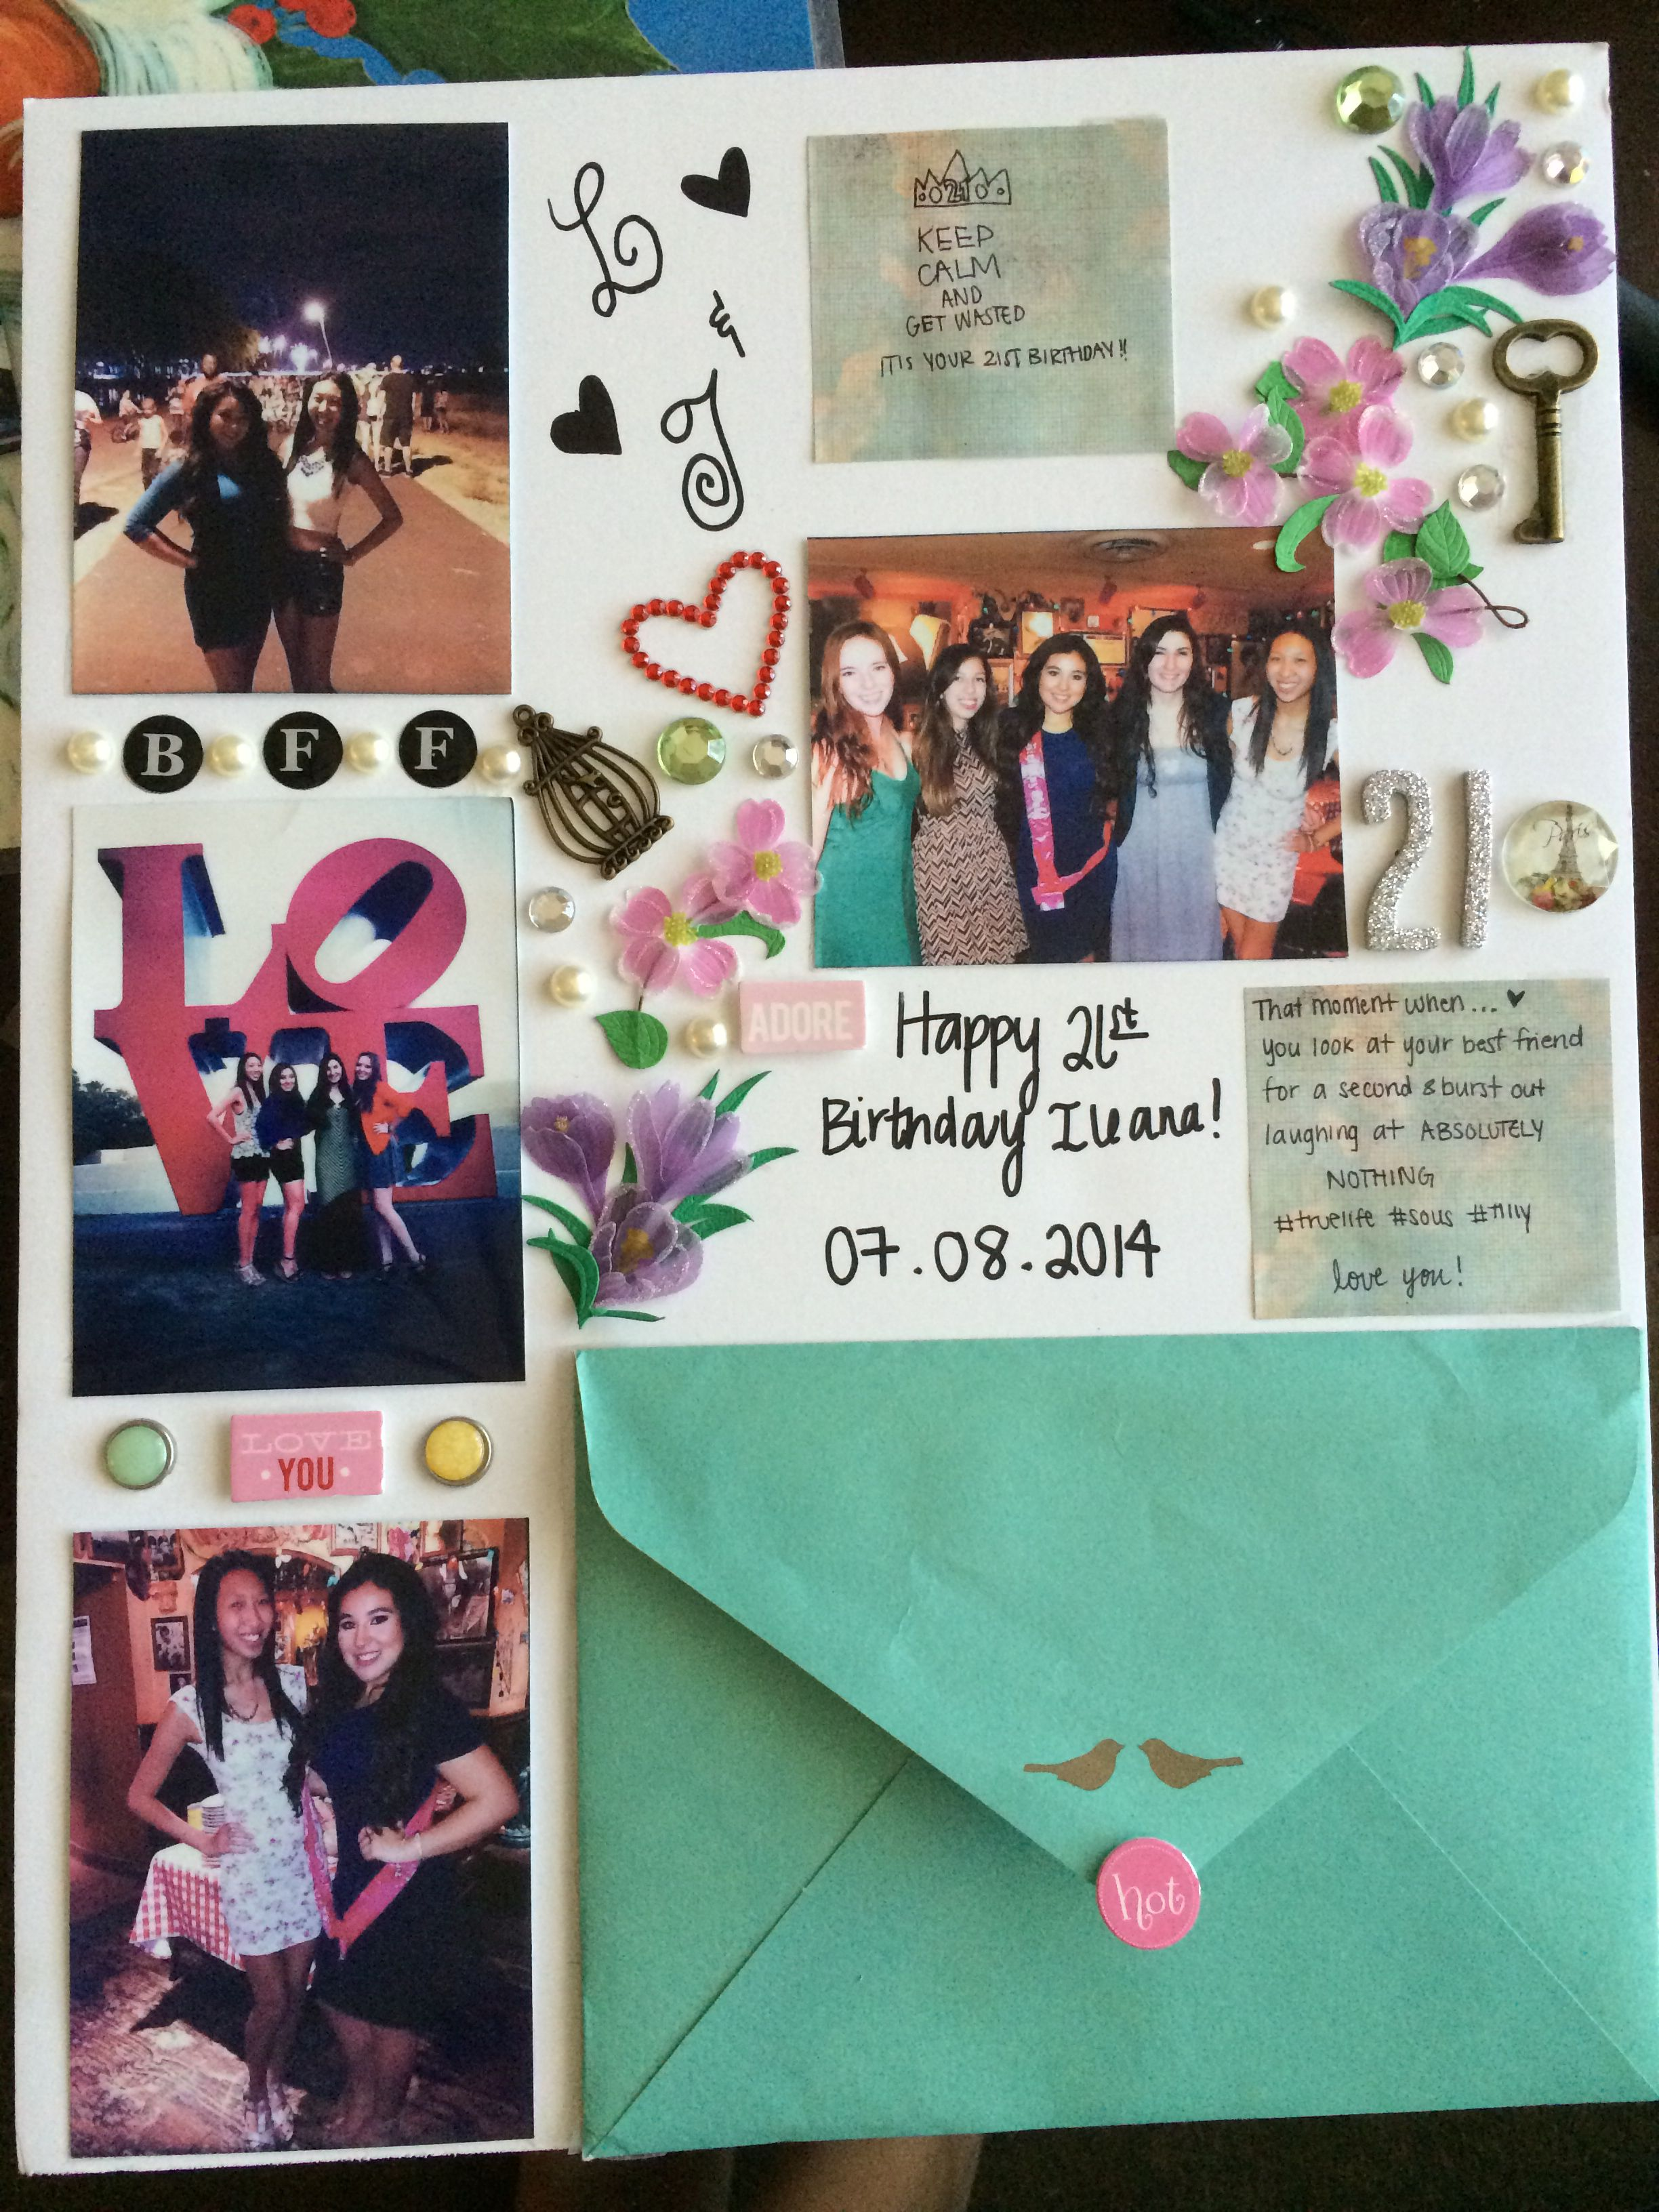 Best friends birthday poster! #21birthday | Basteln | Pinterest ...